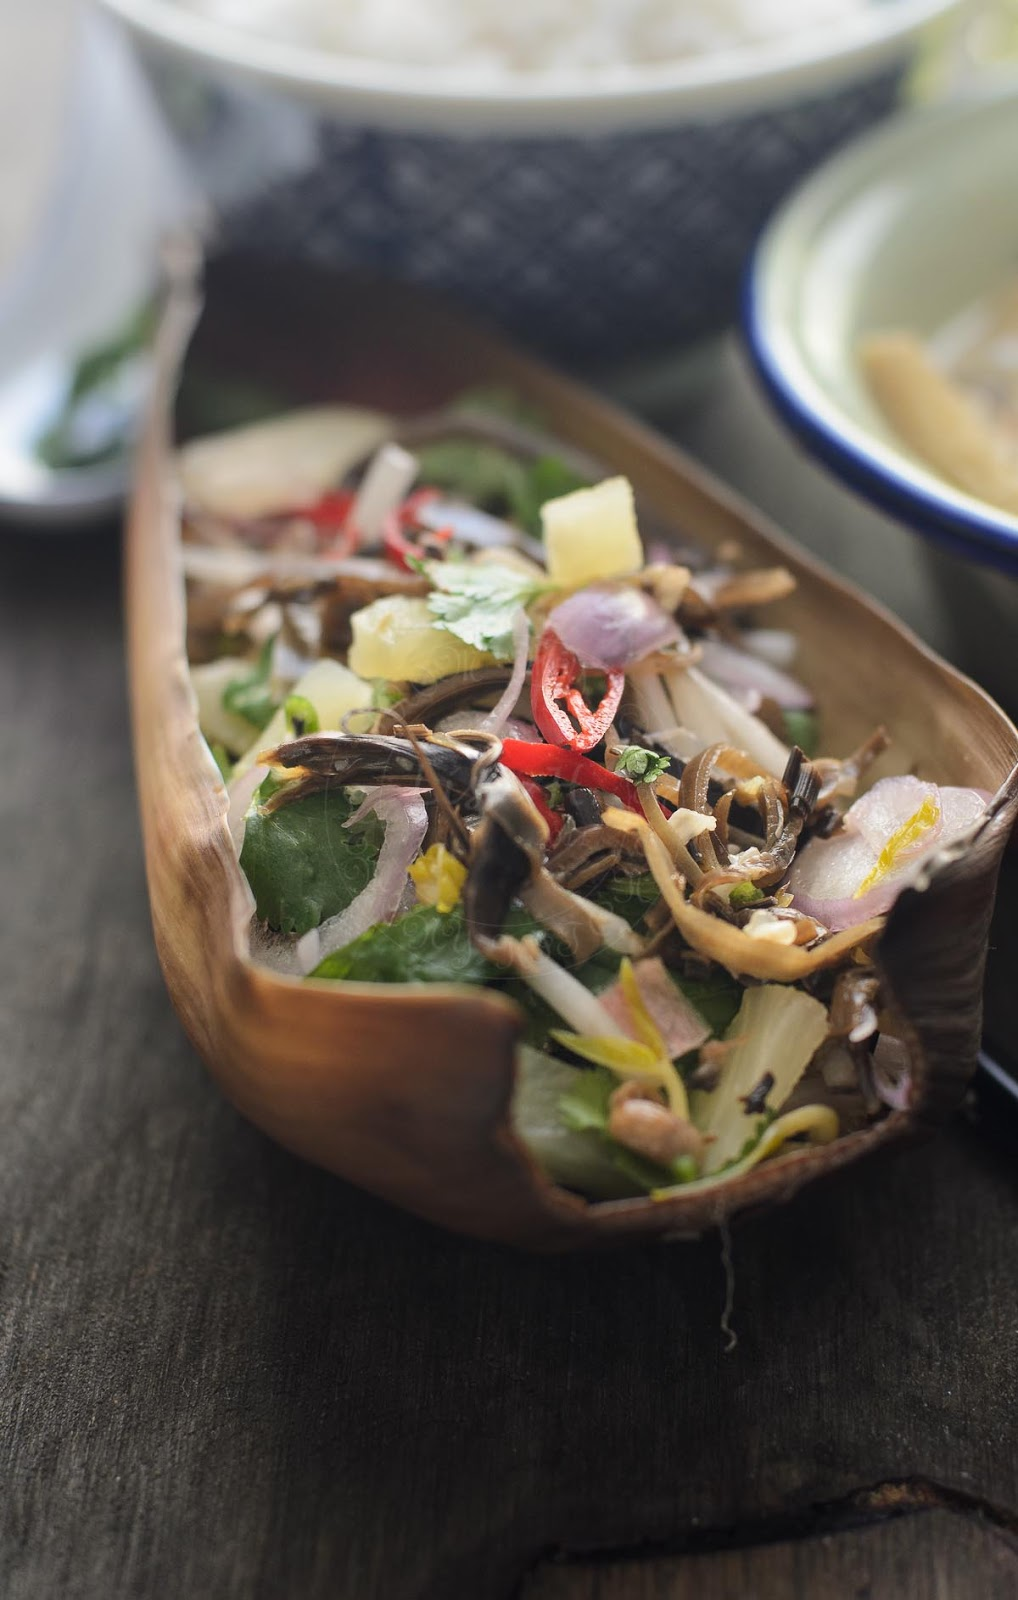 Banana blossom and Pineapple salad image